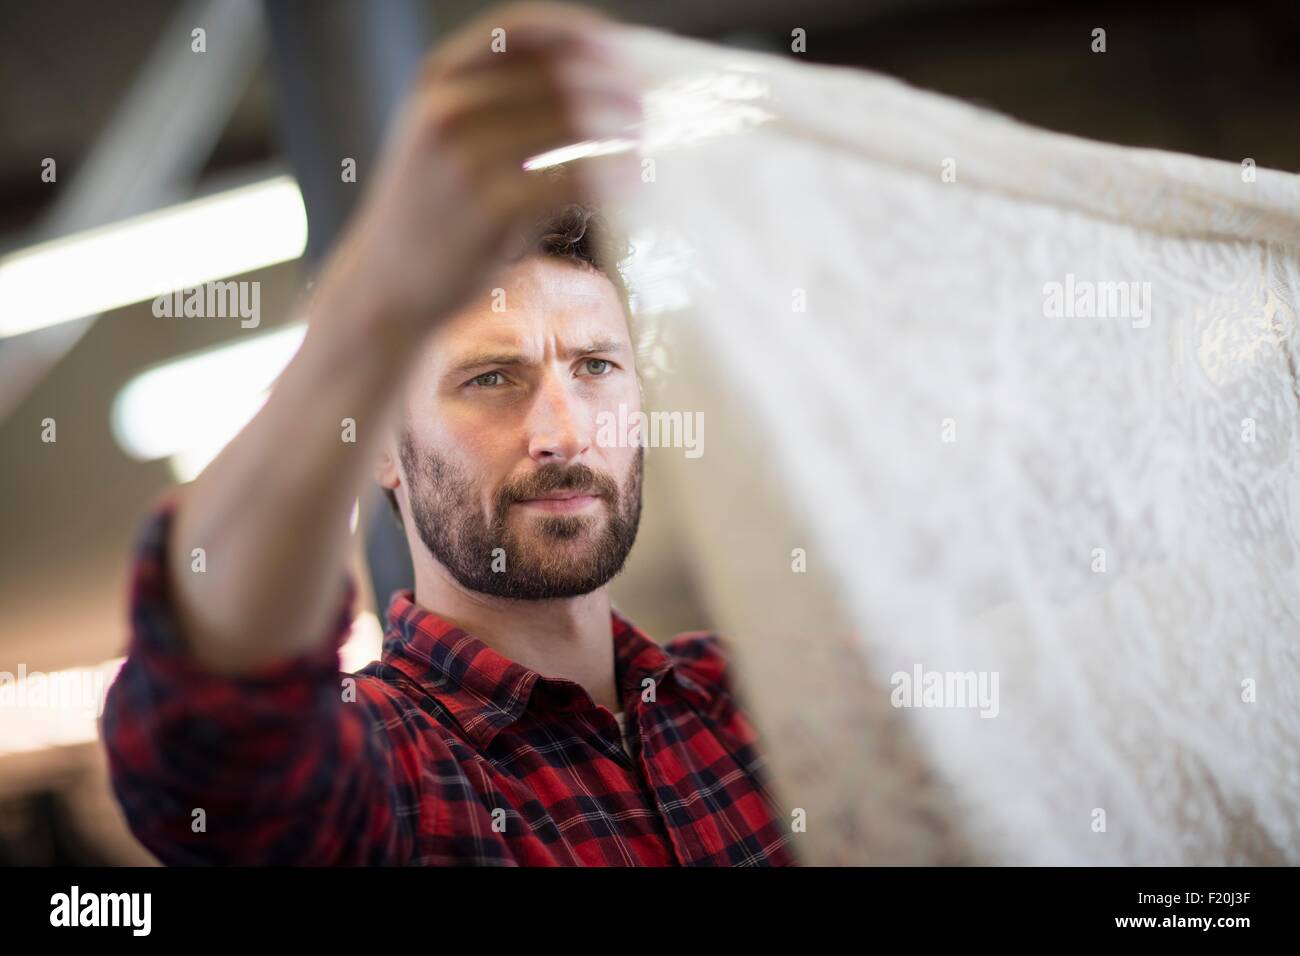 Male weaver checking lace textile in old textile mill - Stock Image